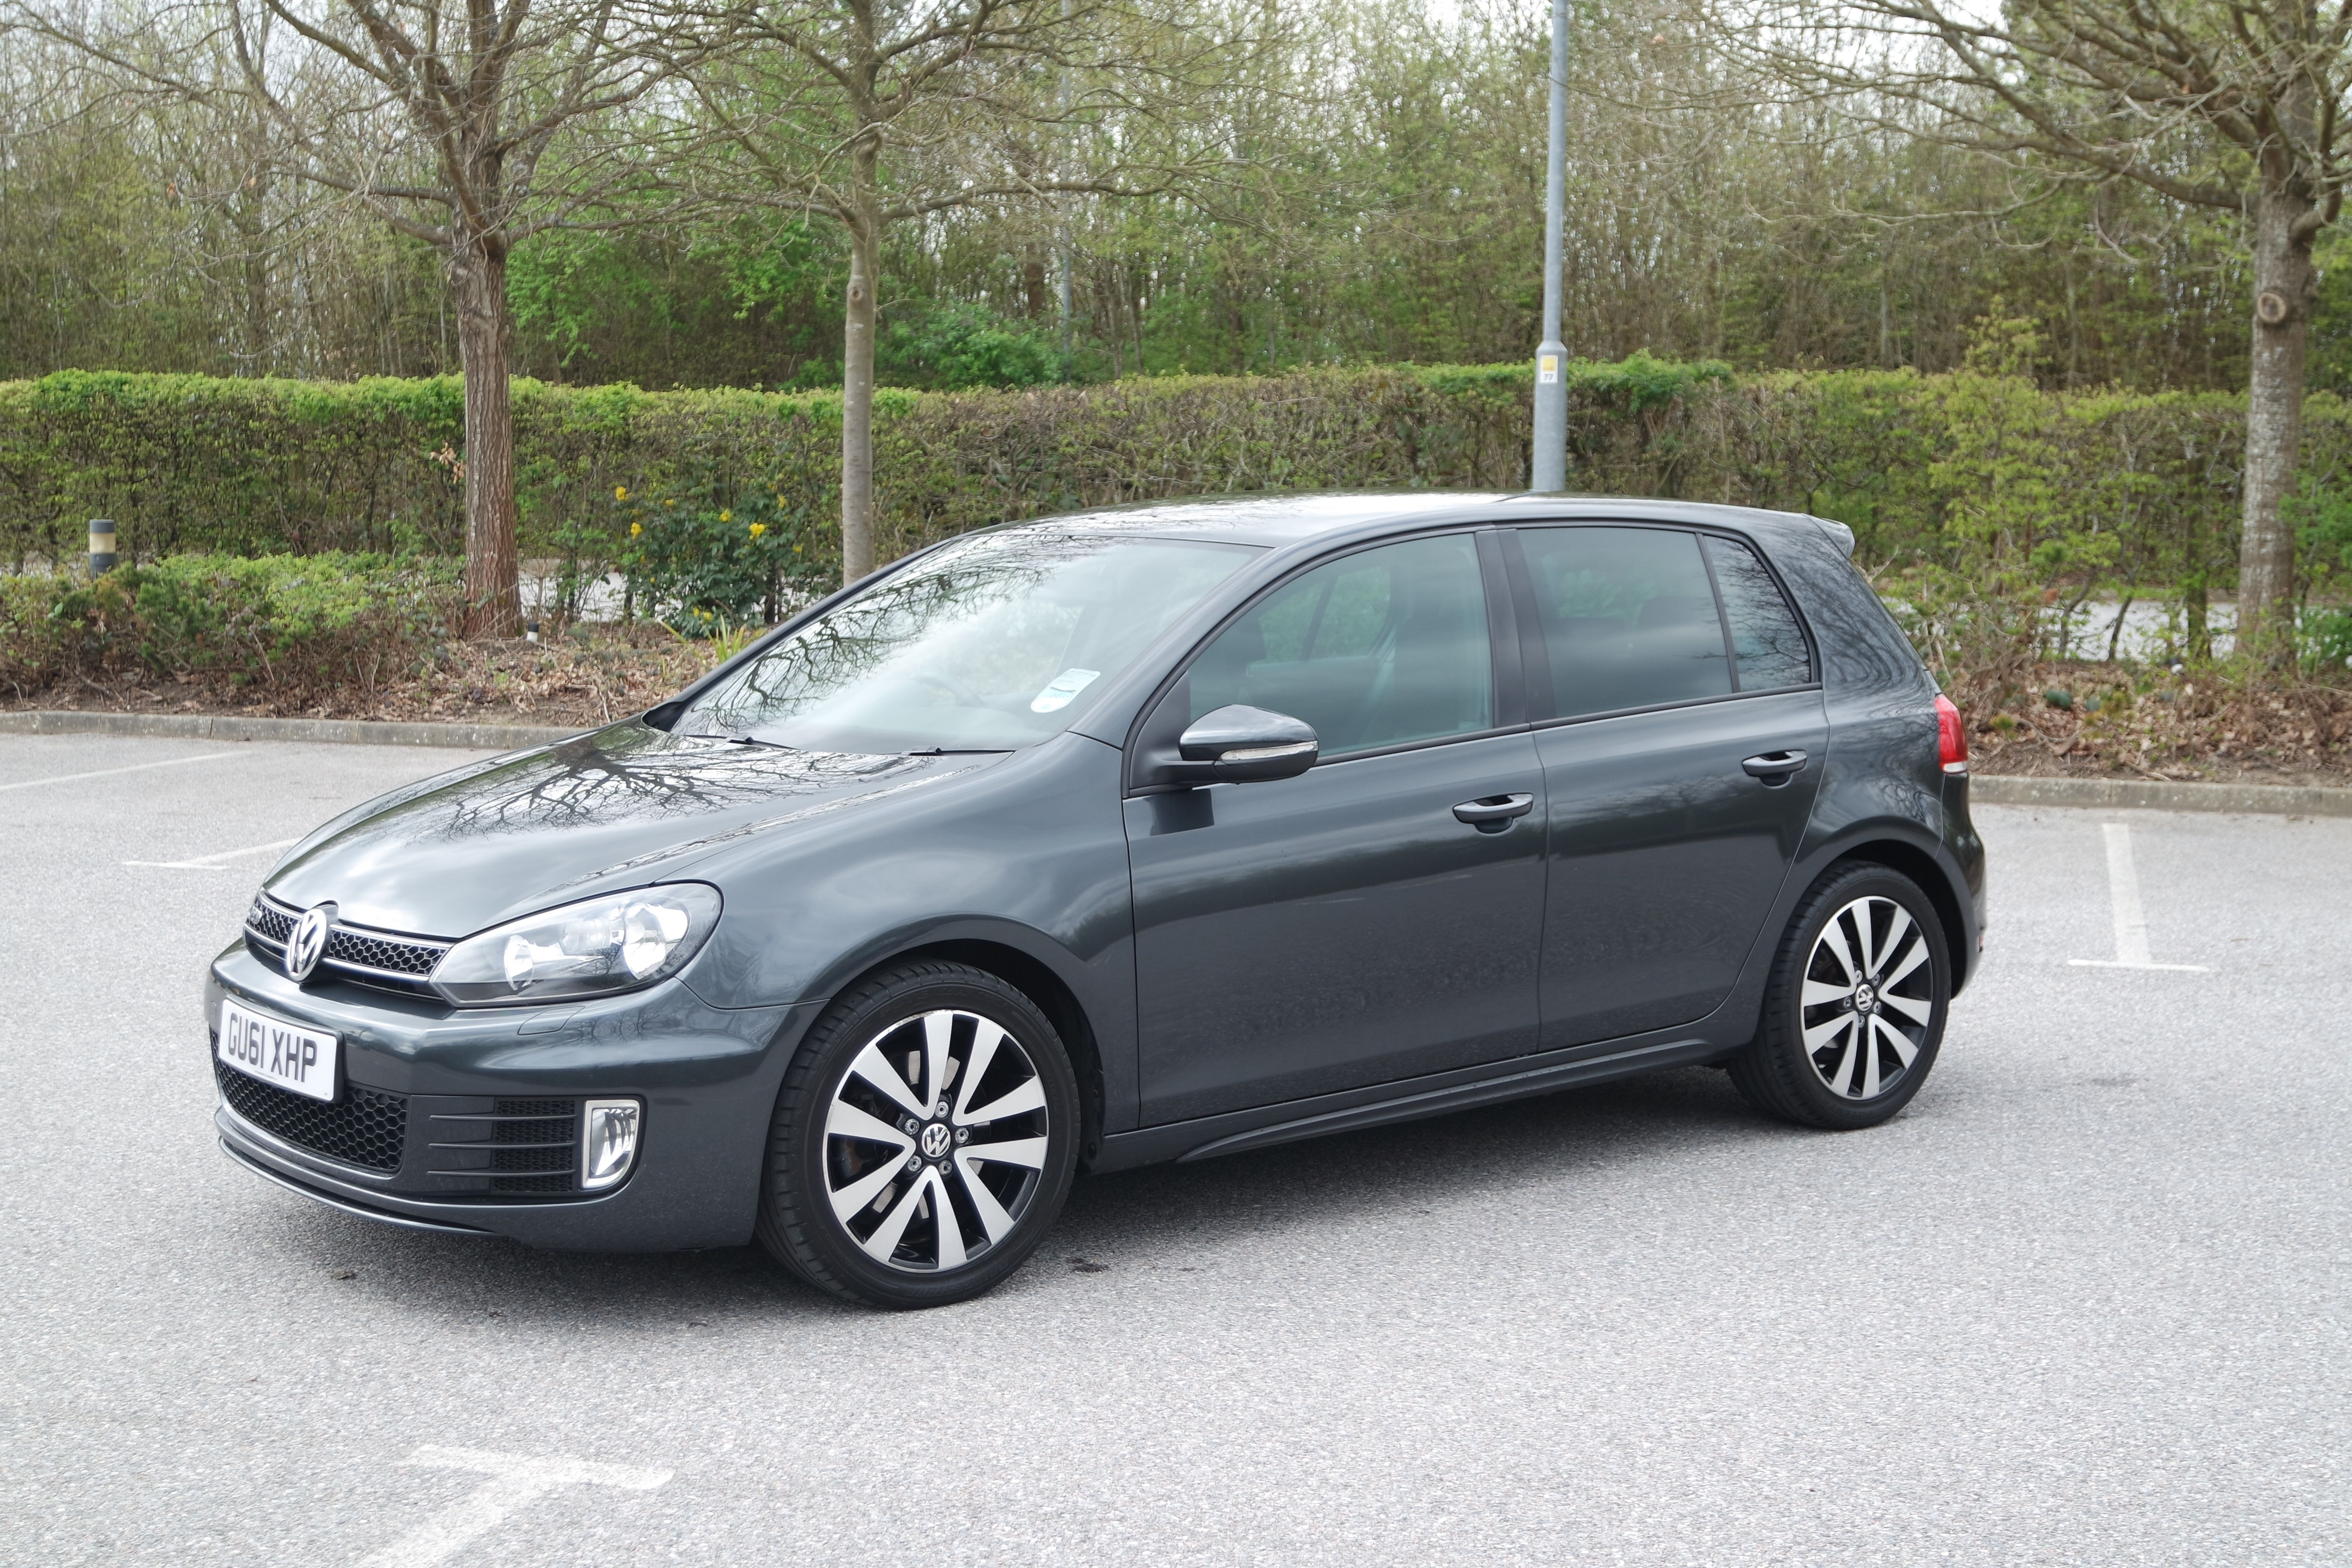 For sale vw golf gtd 170bhp 2011 61 plate 15250